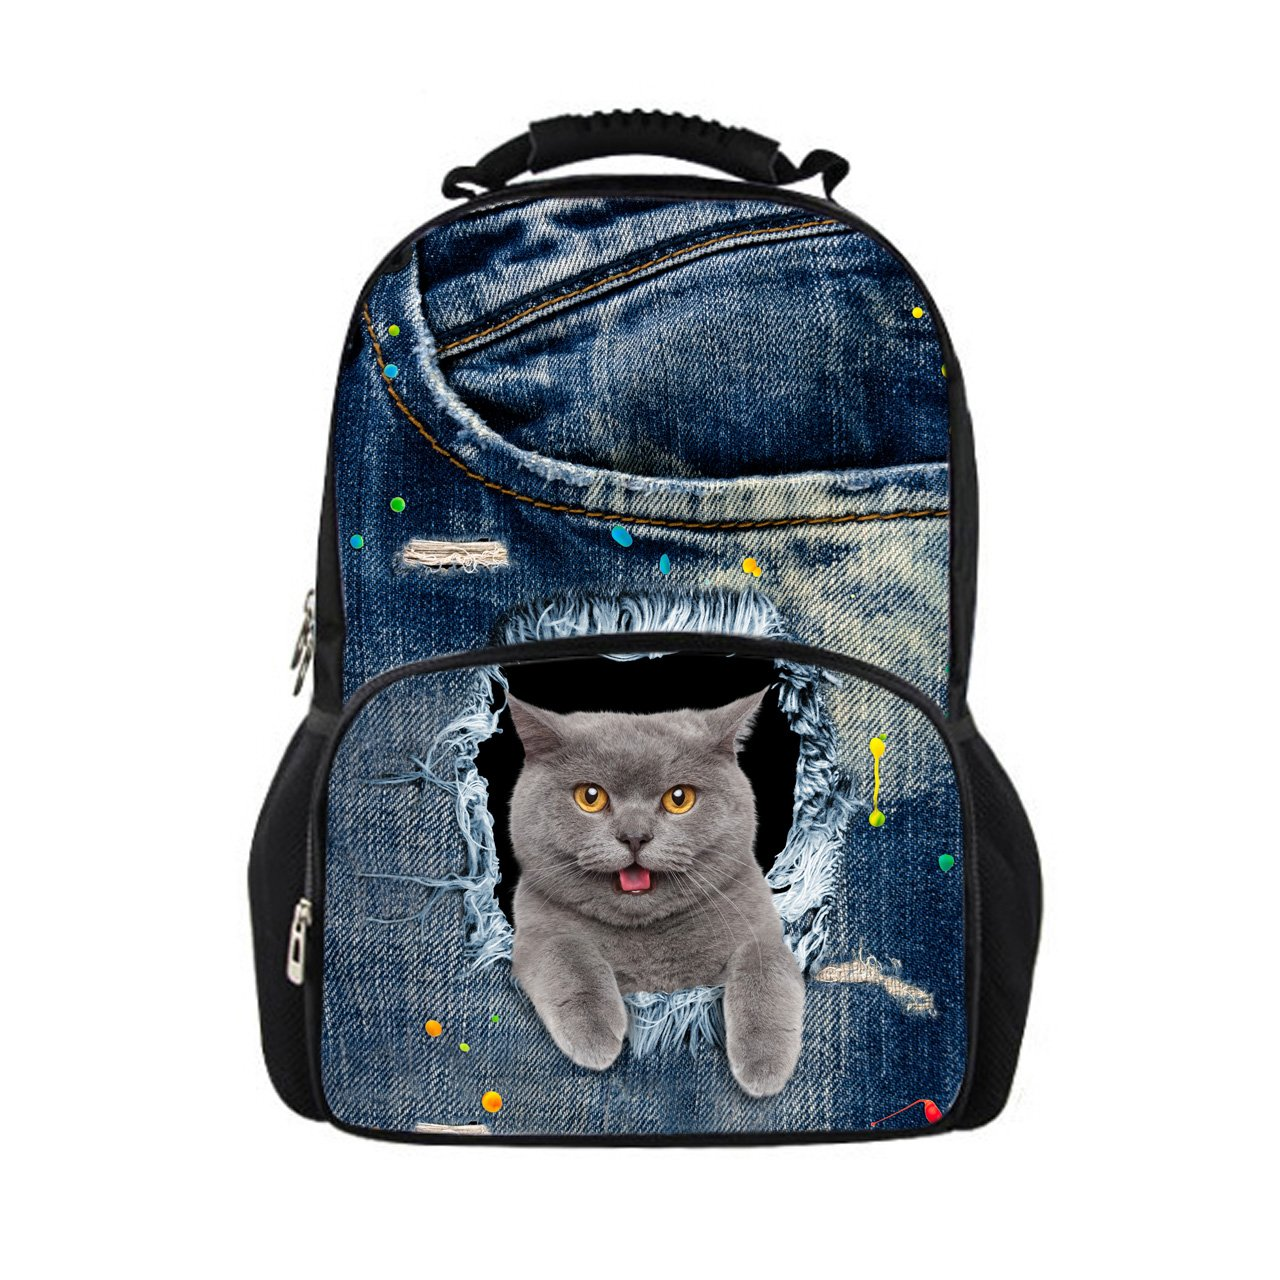 d933bf7f17b0 Showudesigns Korean Style Cat Backpack for Primary Children Cool Denim  Bagpack